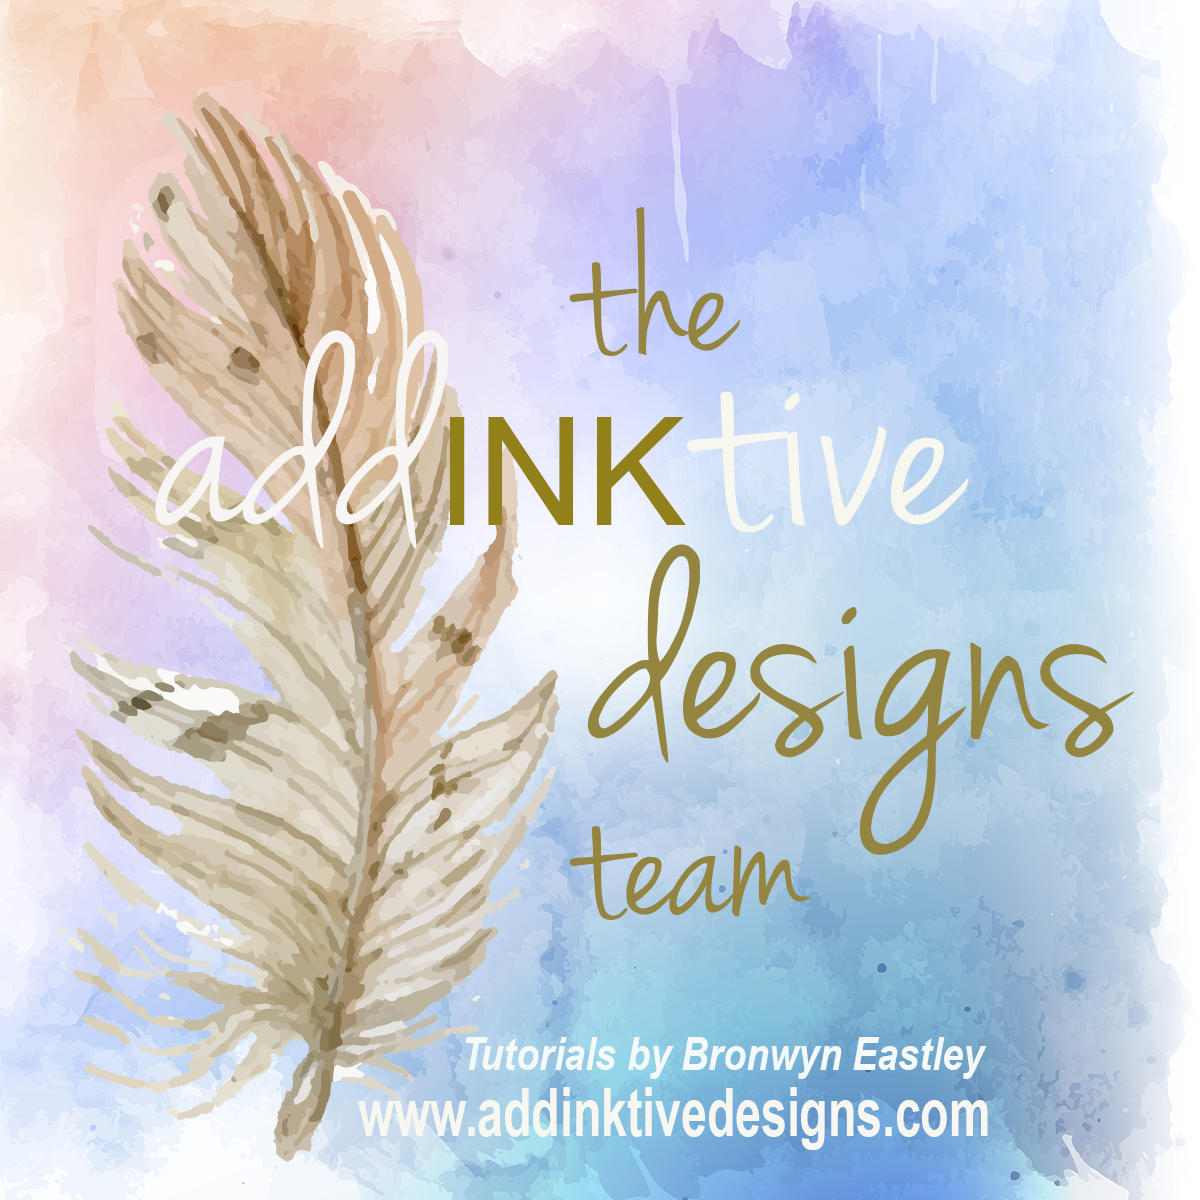 Expressions of Interest for the Addinktive Designs Team